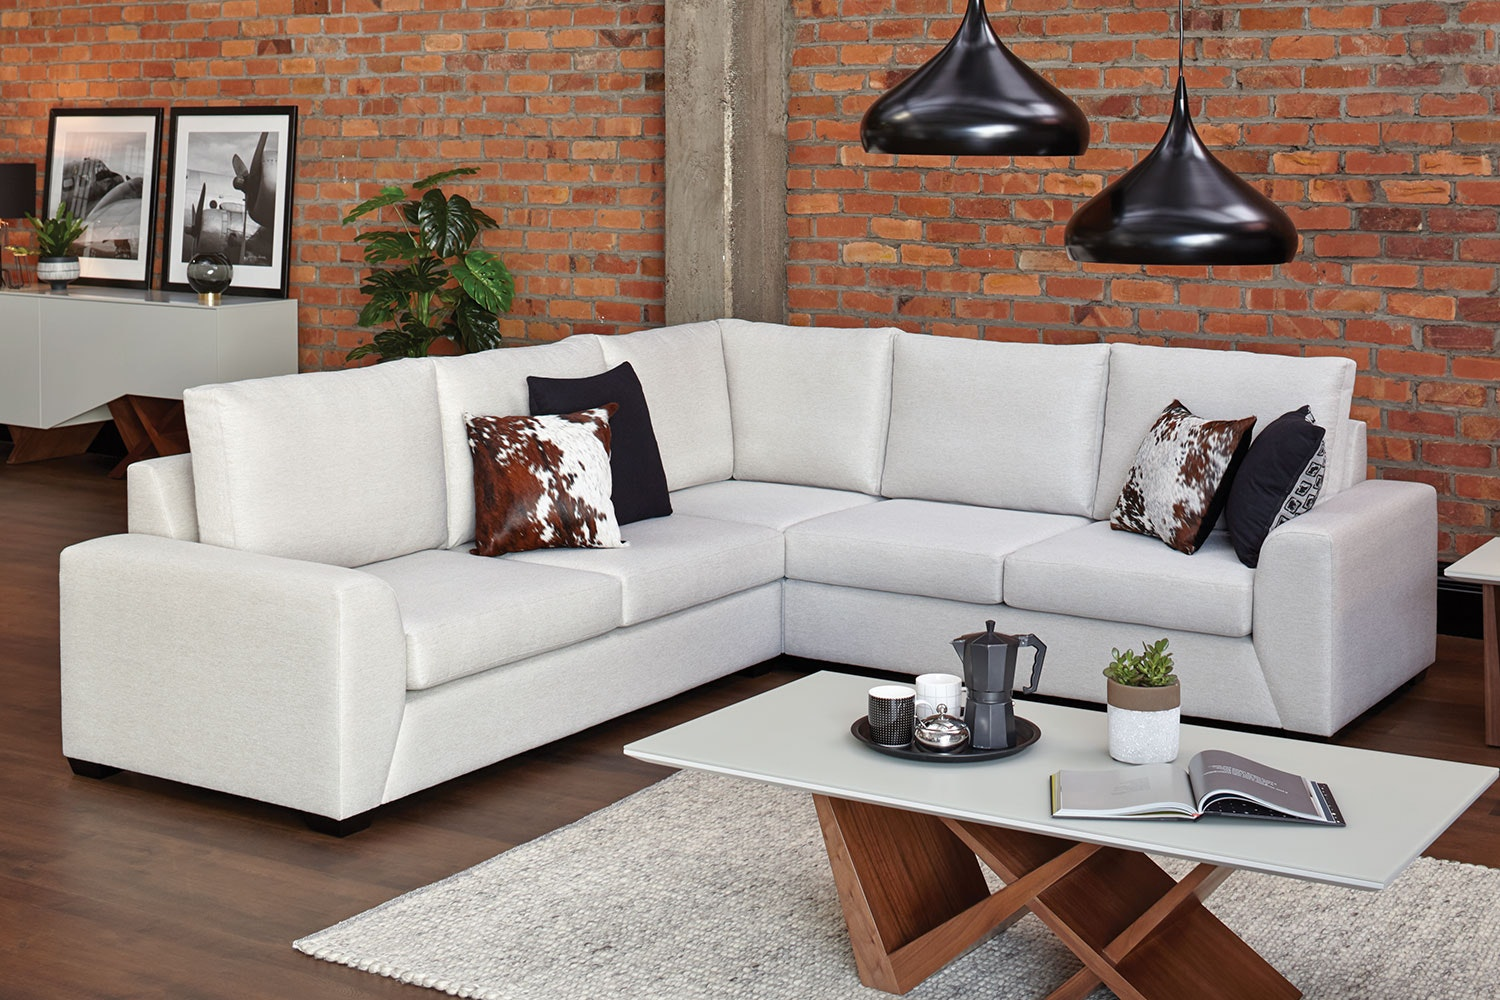 Ella 5-Seater Fabric Corner Lounge Suite by Furniture Haven